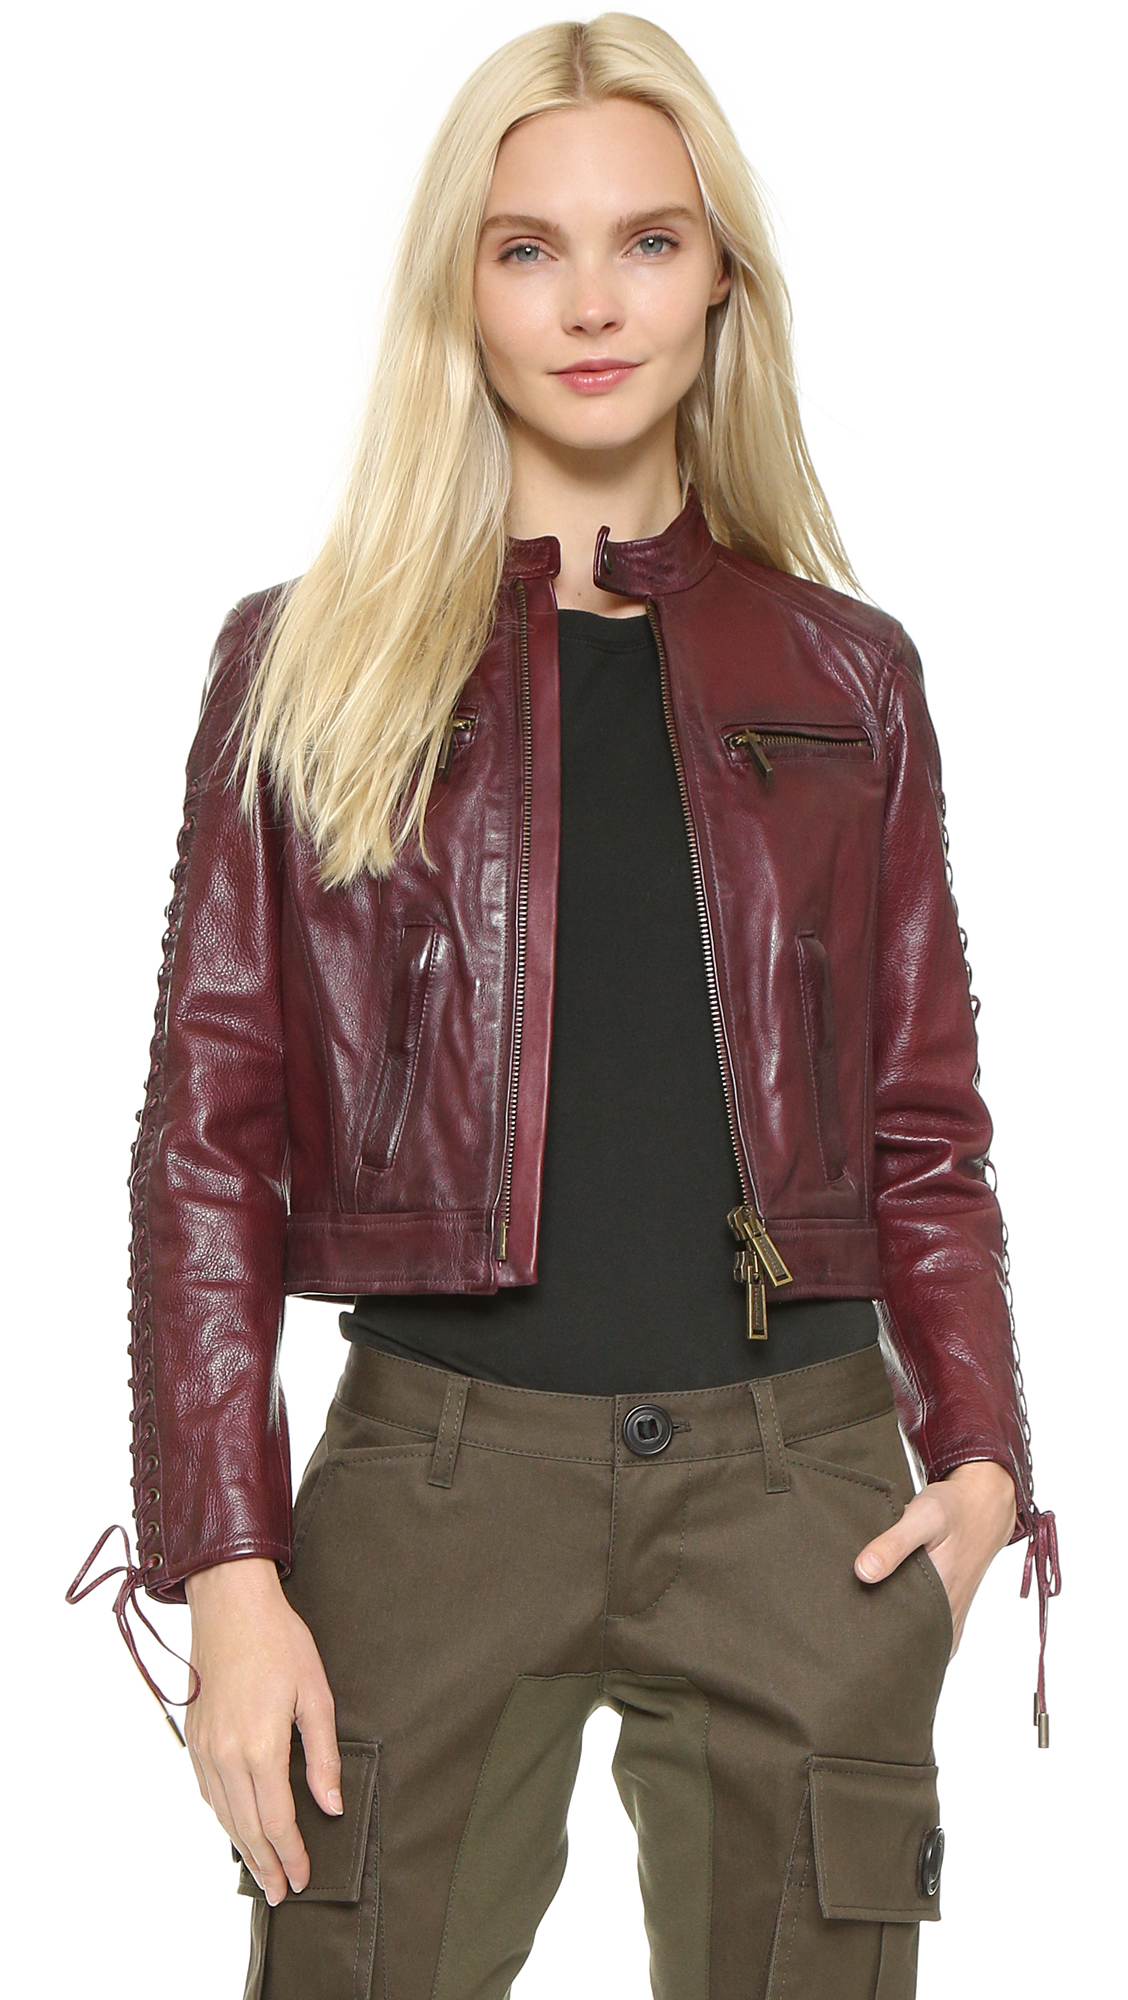 Chic leather jackets